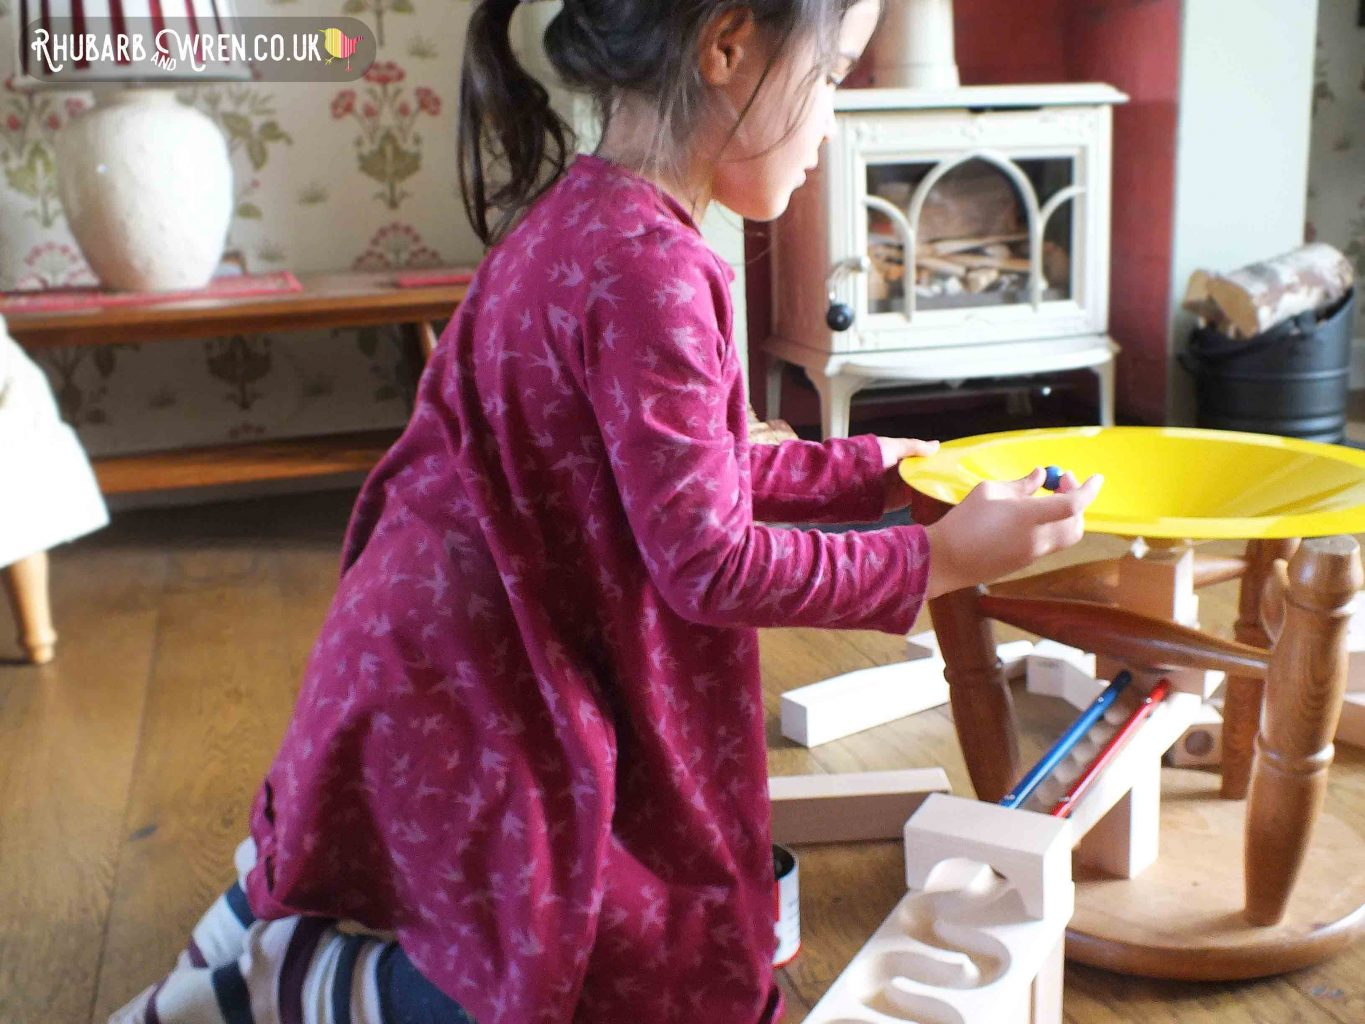 Girl launching marbles into whirlpool section of HABA marble run set.